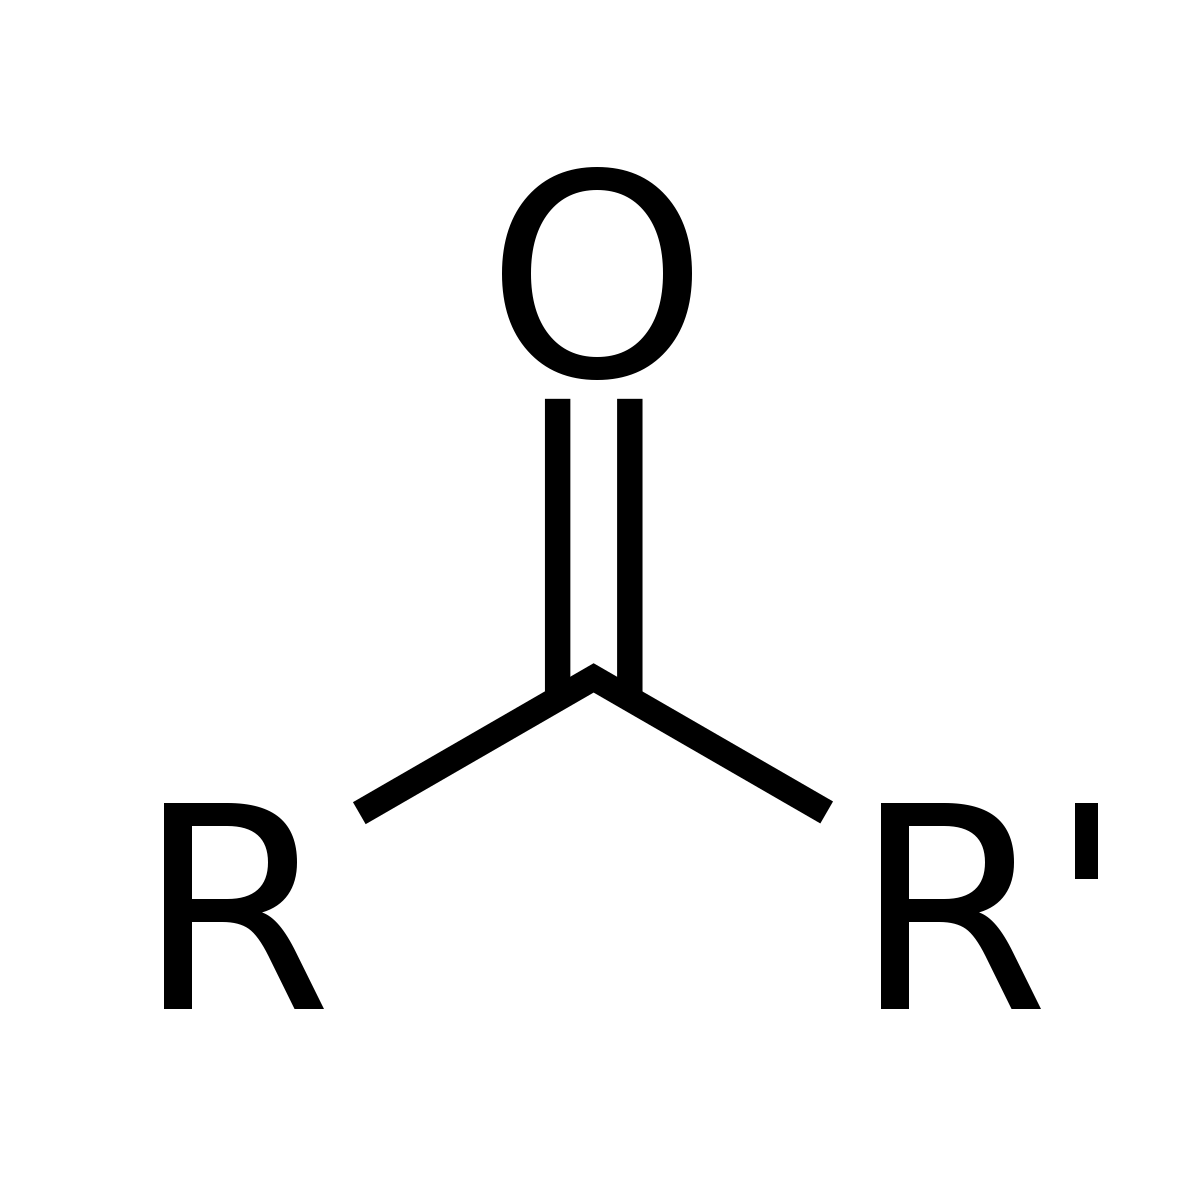 hight resolution of acetone lewis structure clipart ketone wikipedia